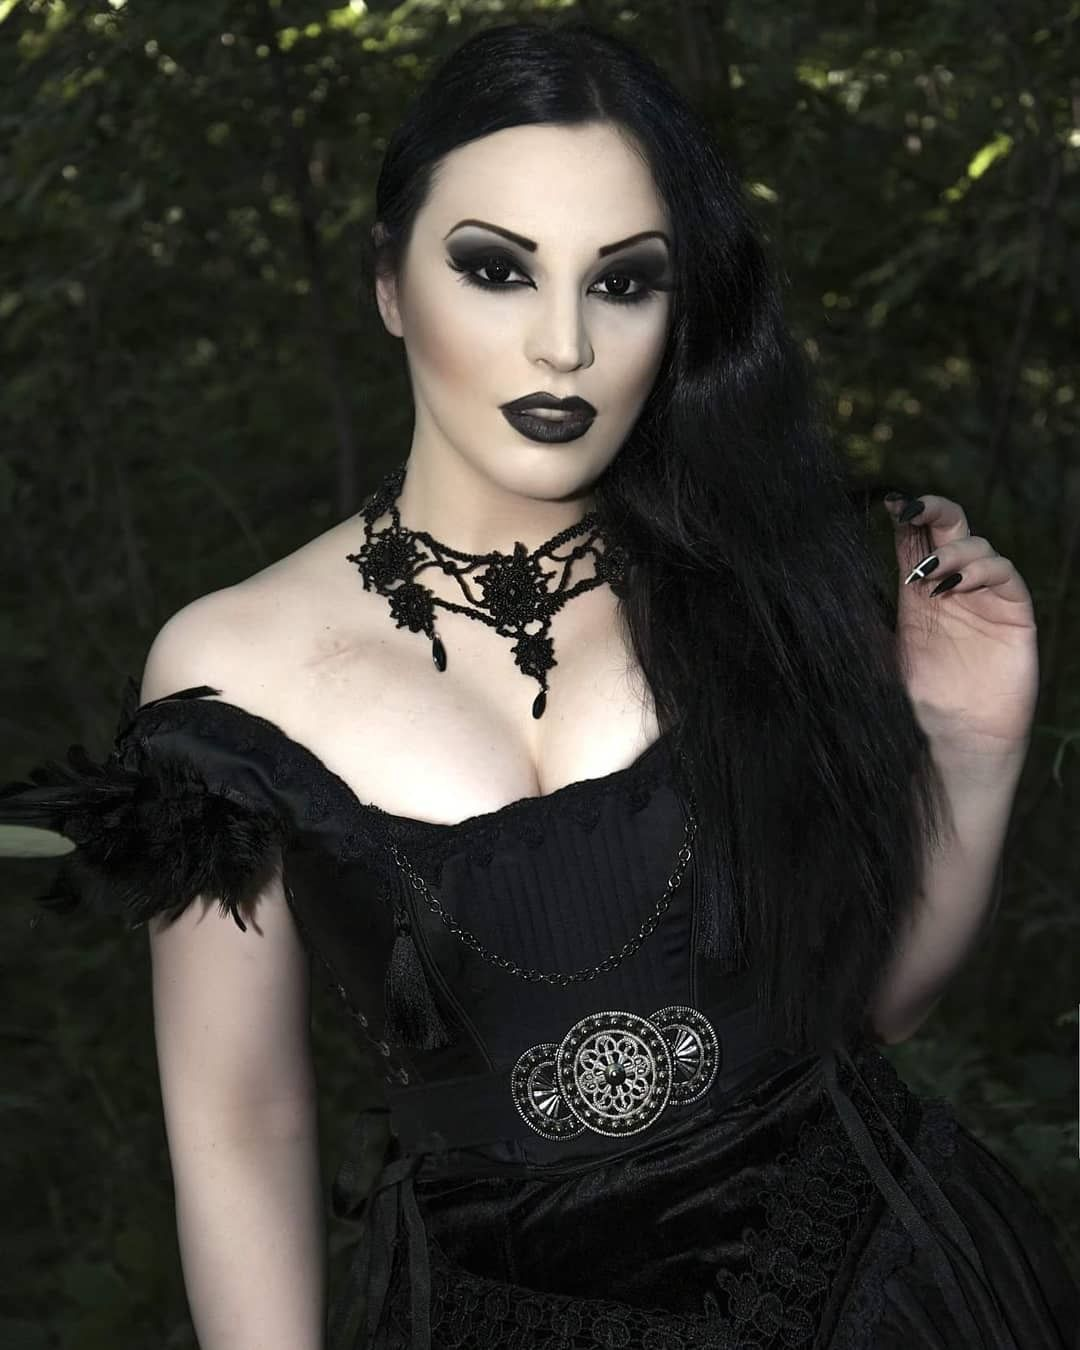 Pin by Дмитрий Иванов on Готы pinterest dark beauty and dark